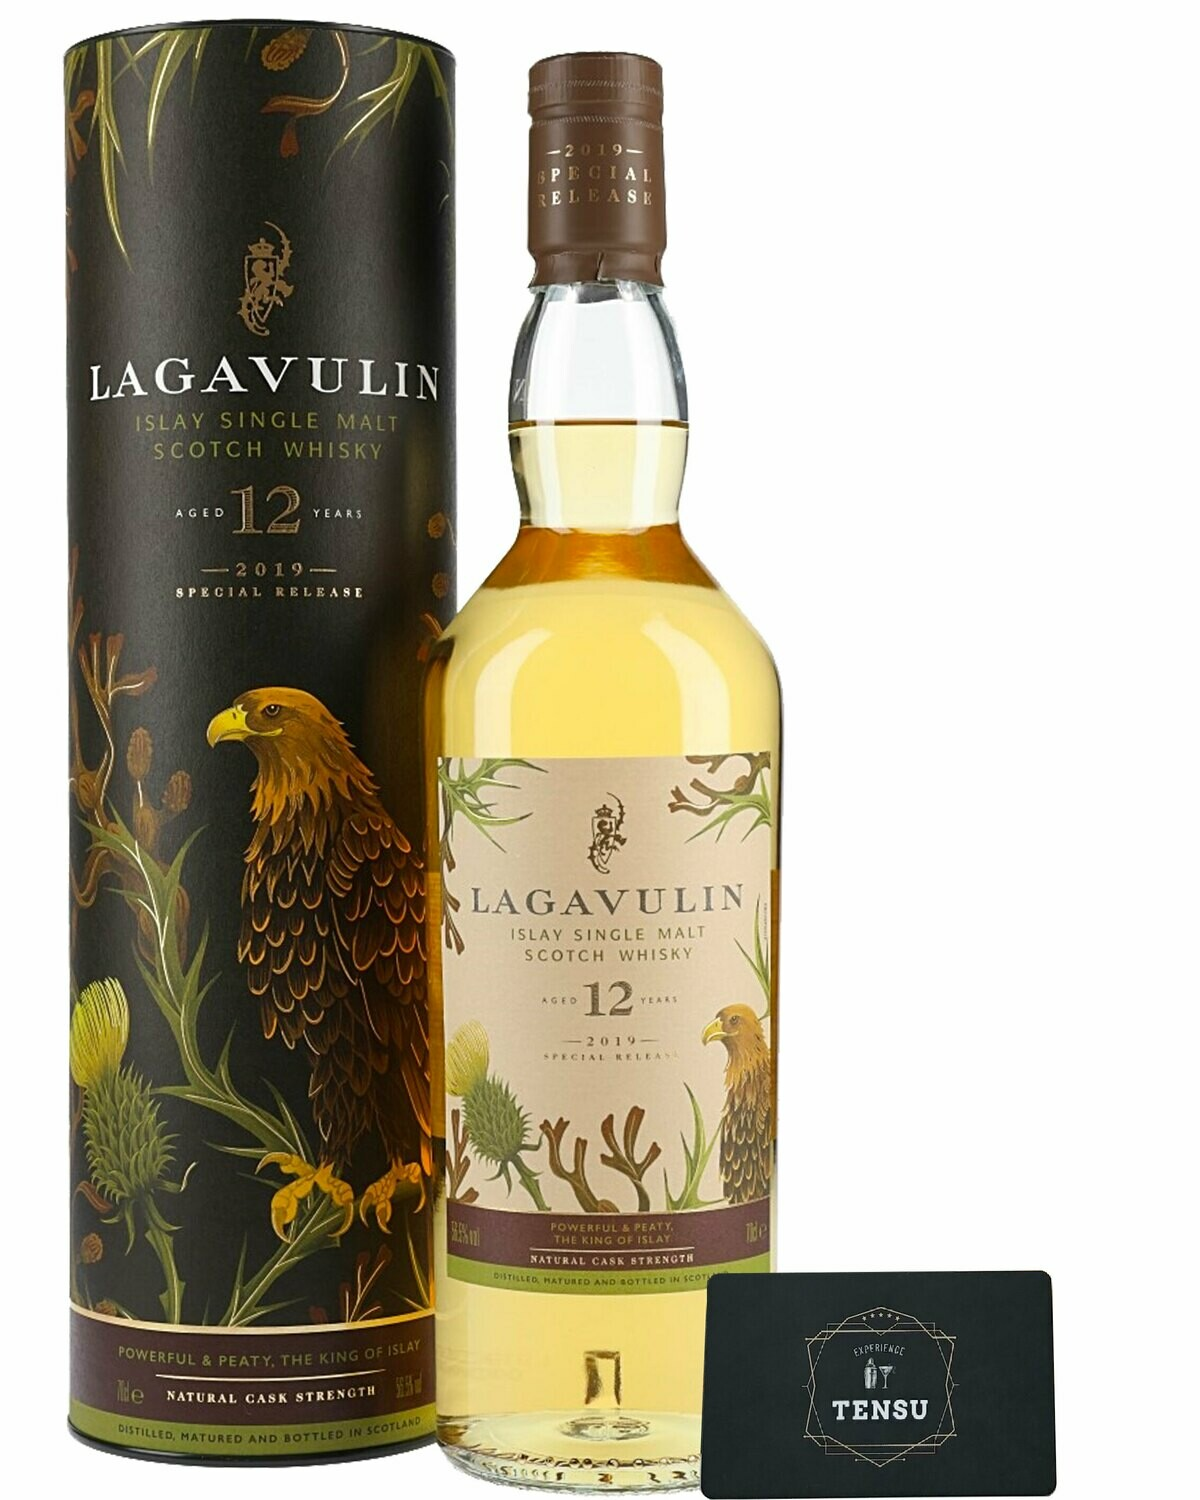 """Lagavulin 12 Years Old (2019) """"Special Release - Rare by Nature"""""""